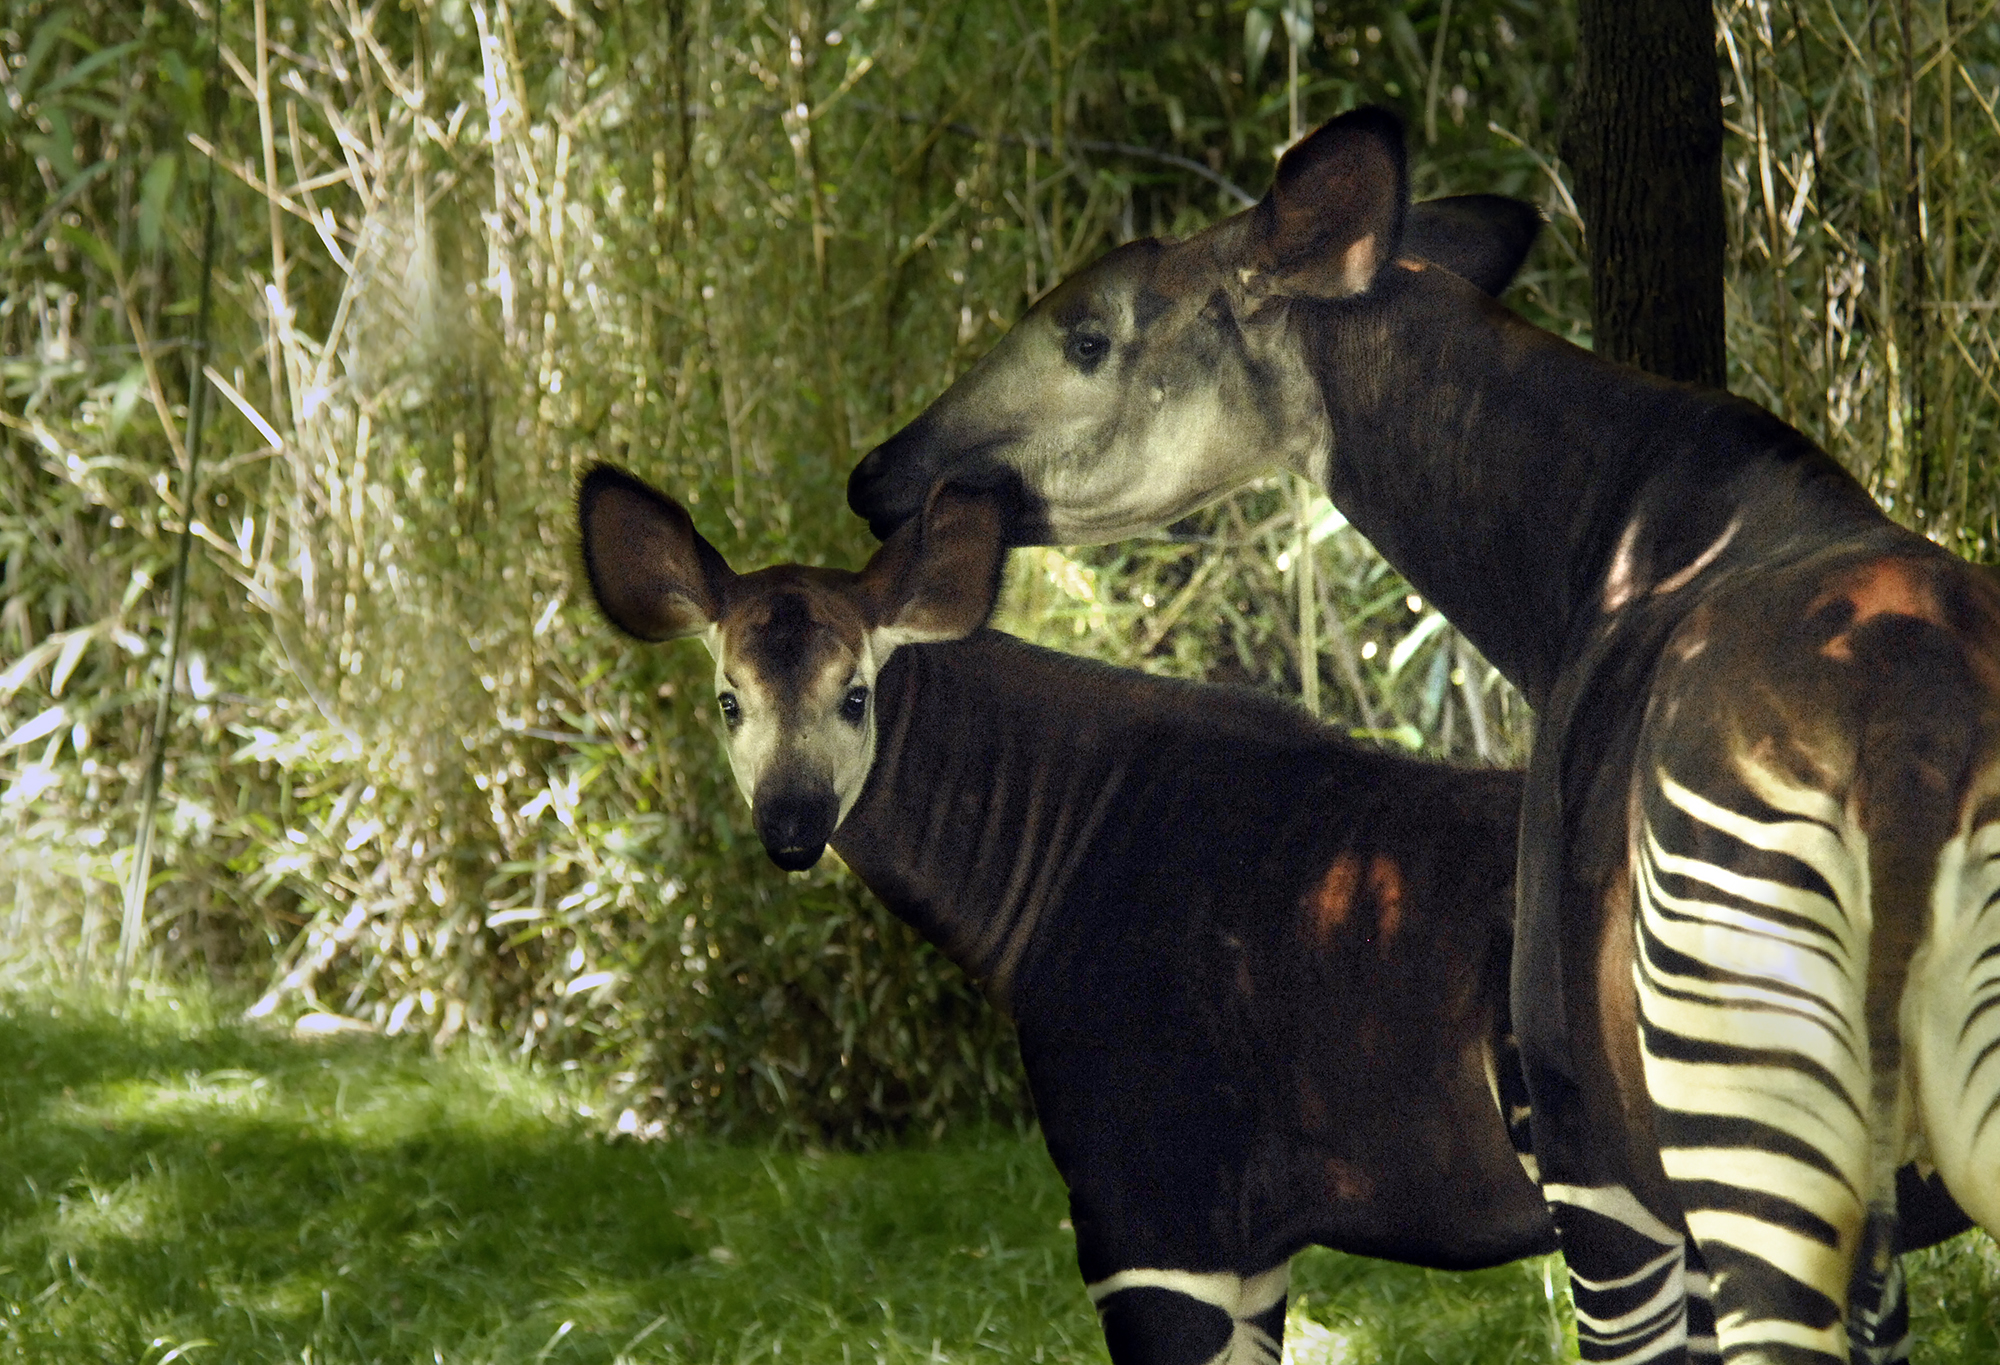 Okapi Rare Rainforest Giraffe Wild View